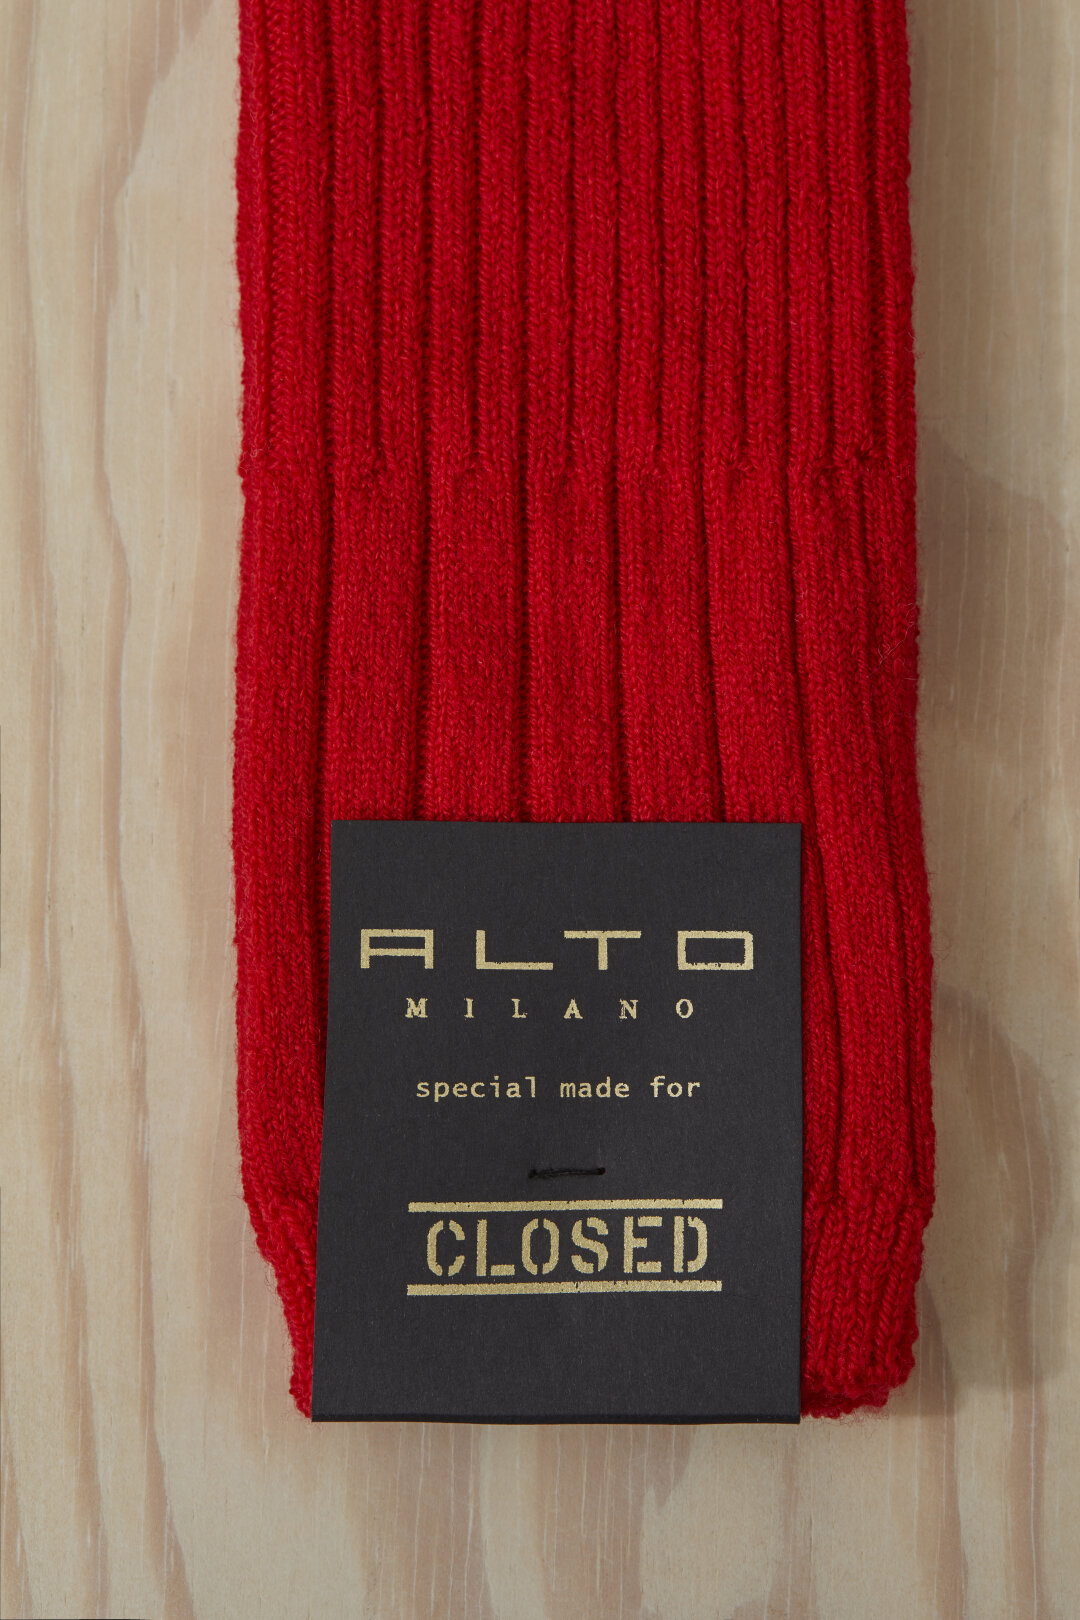 Closed x Alto Milano Socks